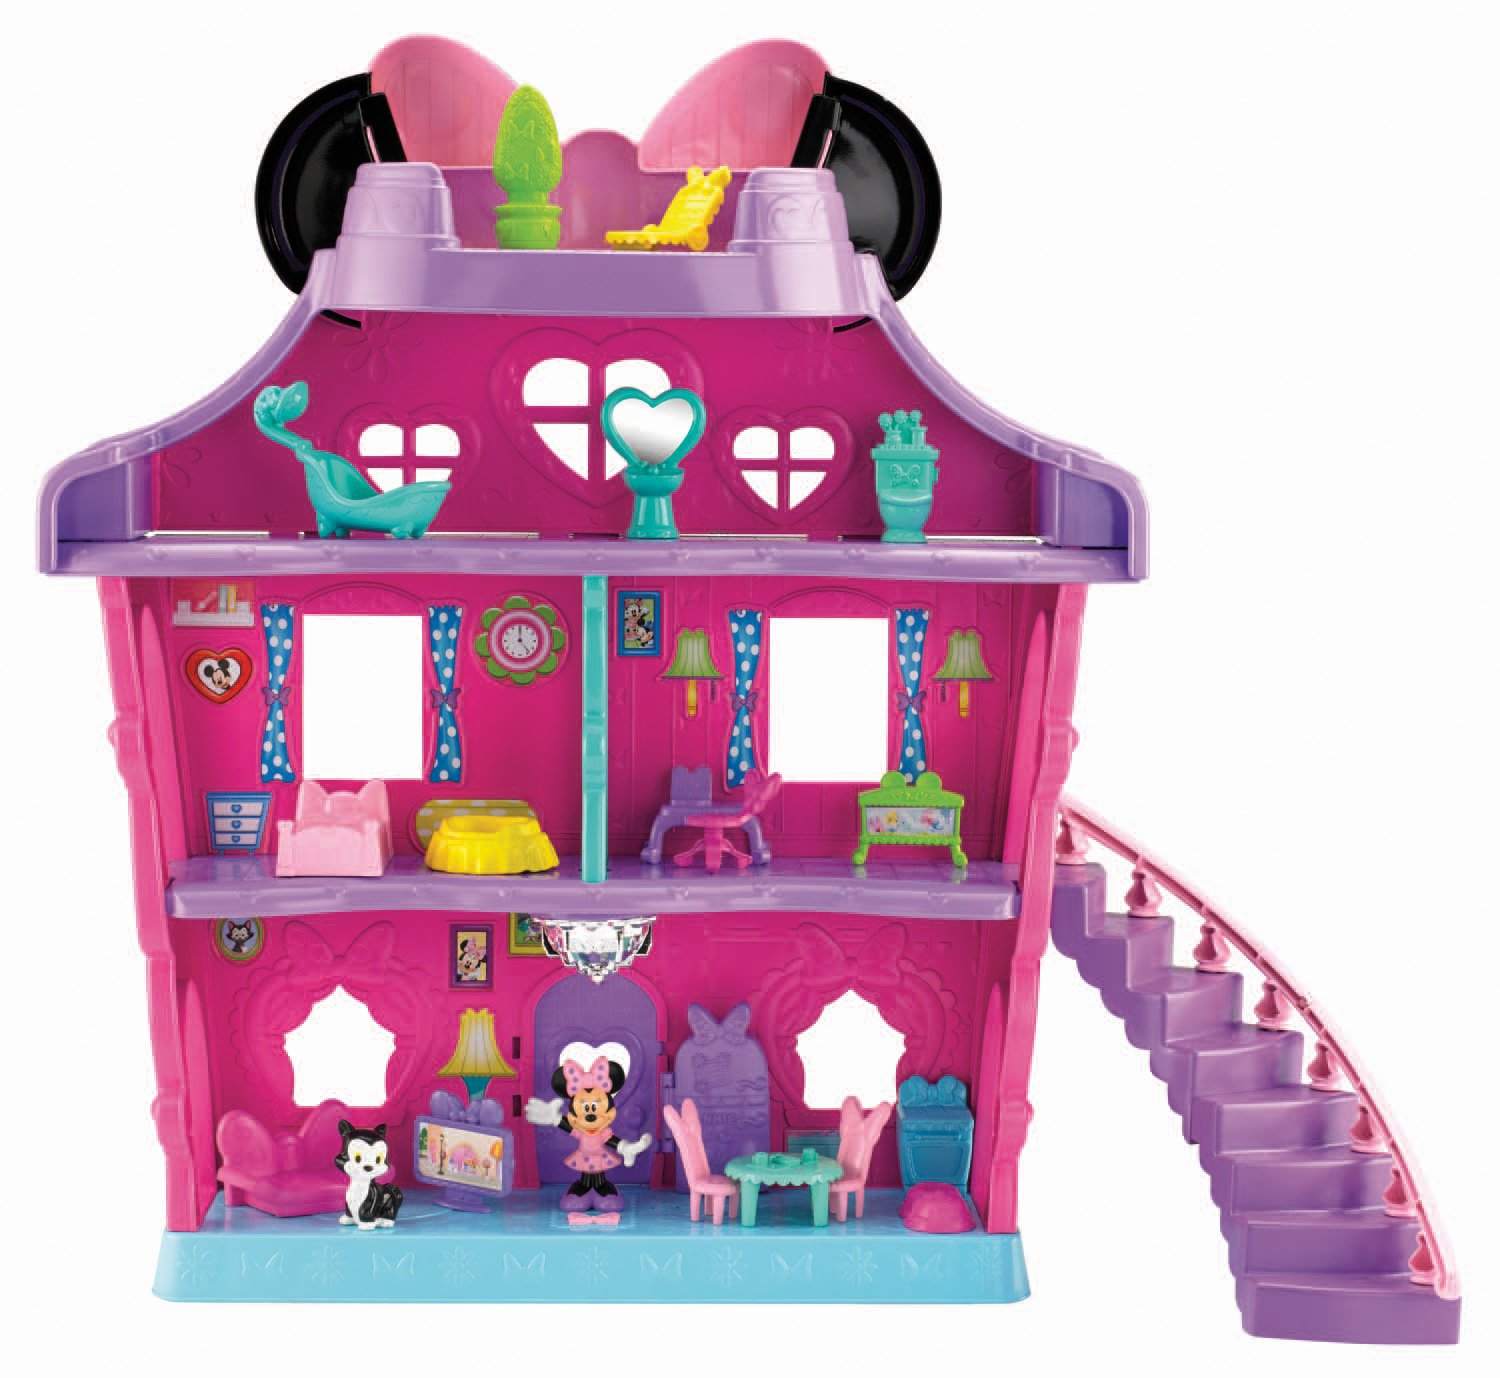 Pink and Purple Plastic Dollhouse with Staircase Gift for Girls Who Love Minnie Mouse